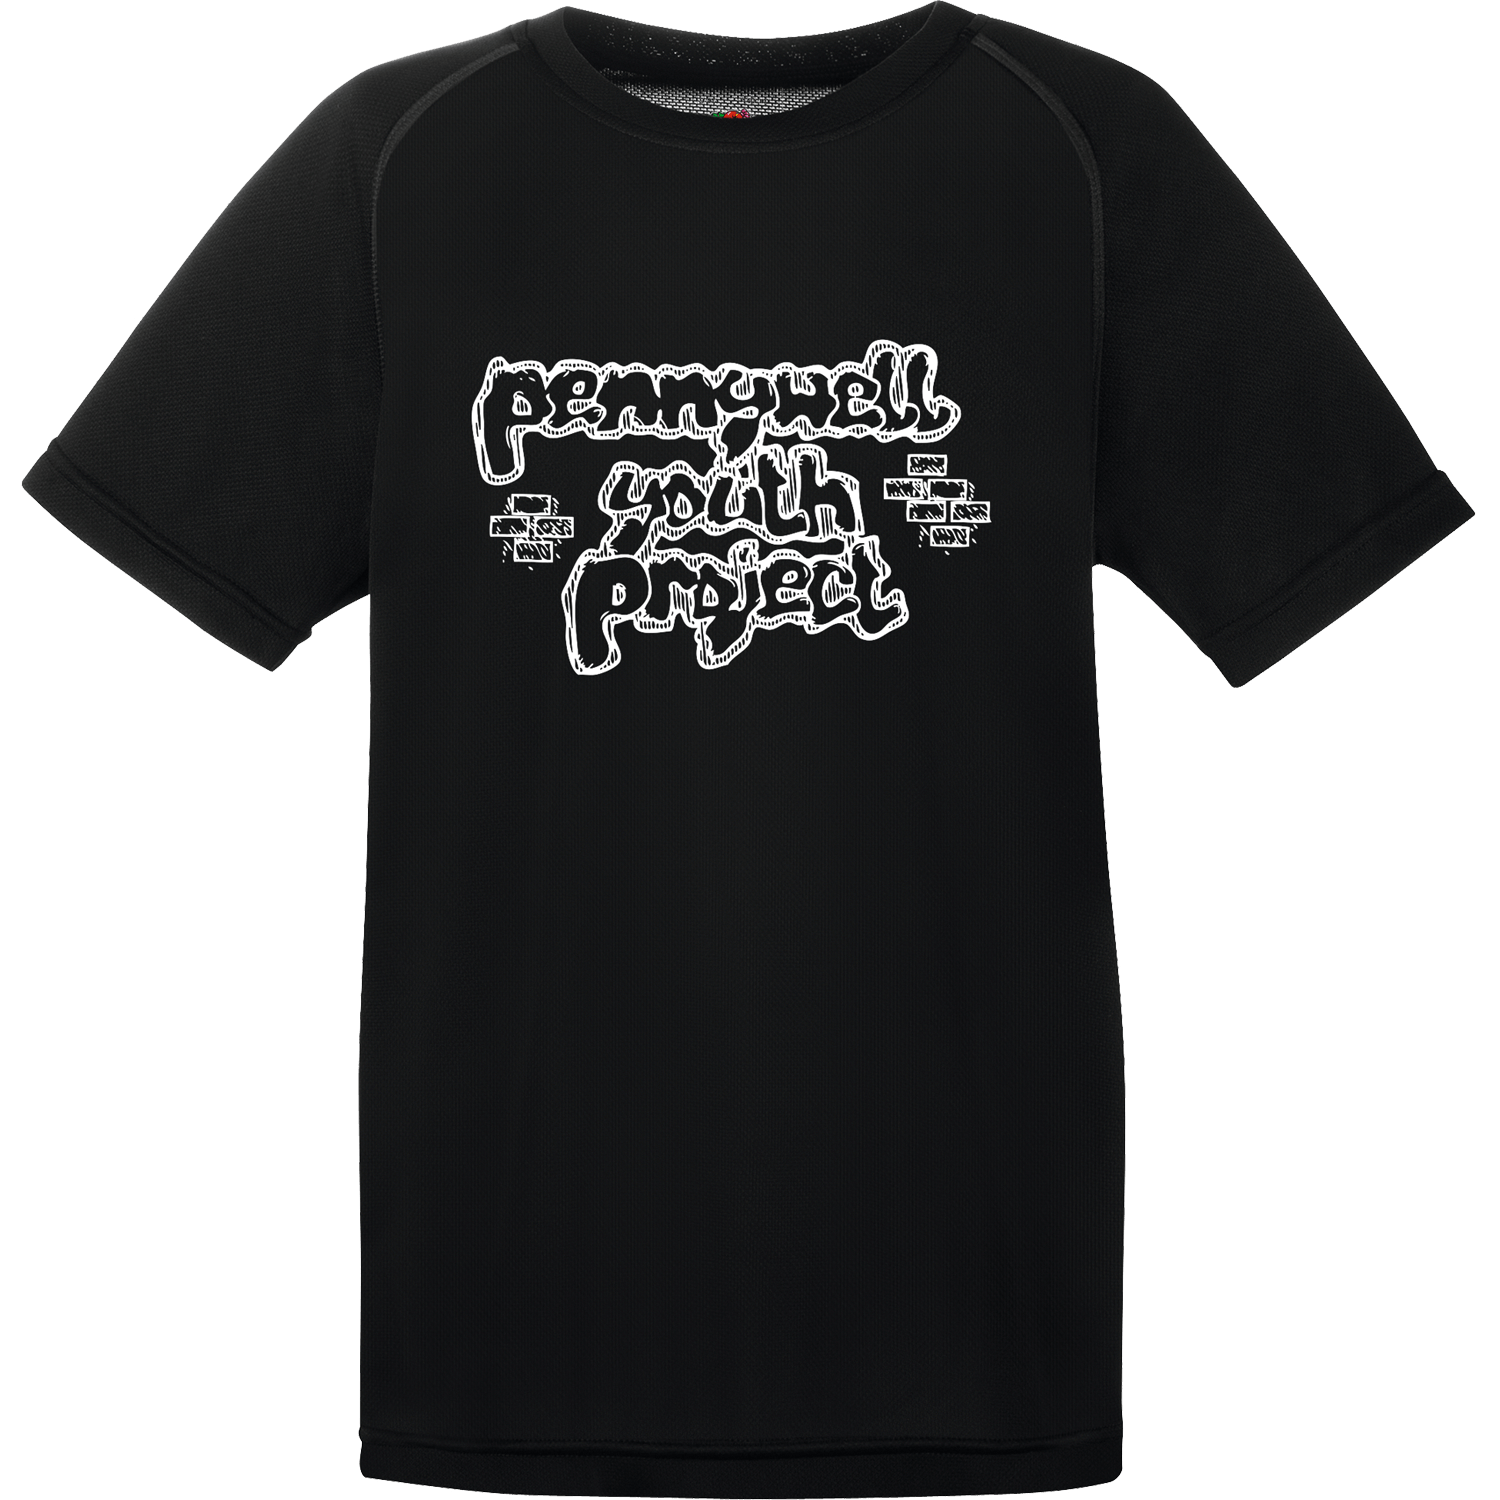 Kids Performance Tee